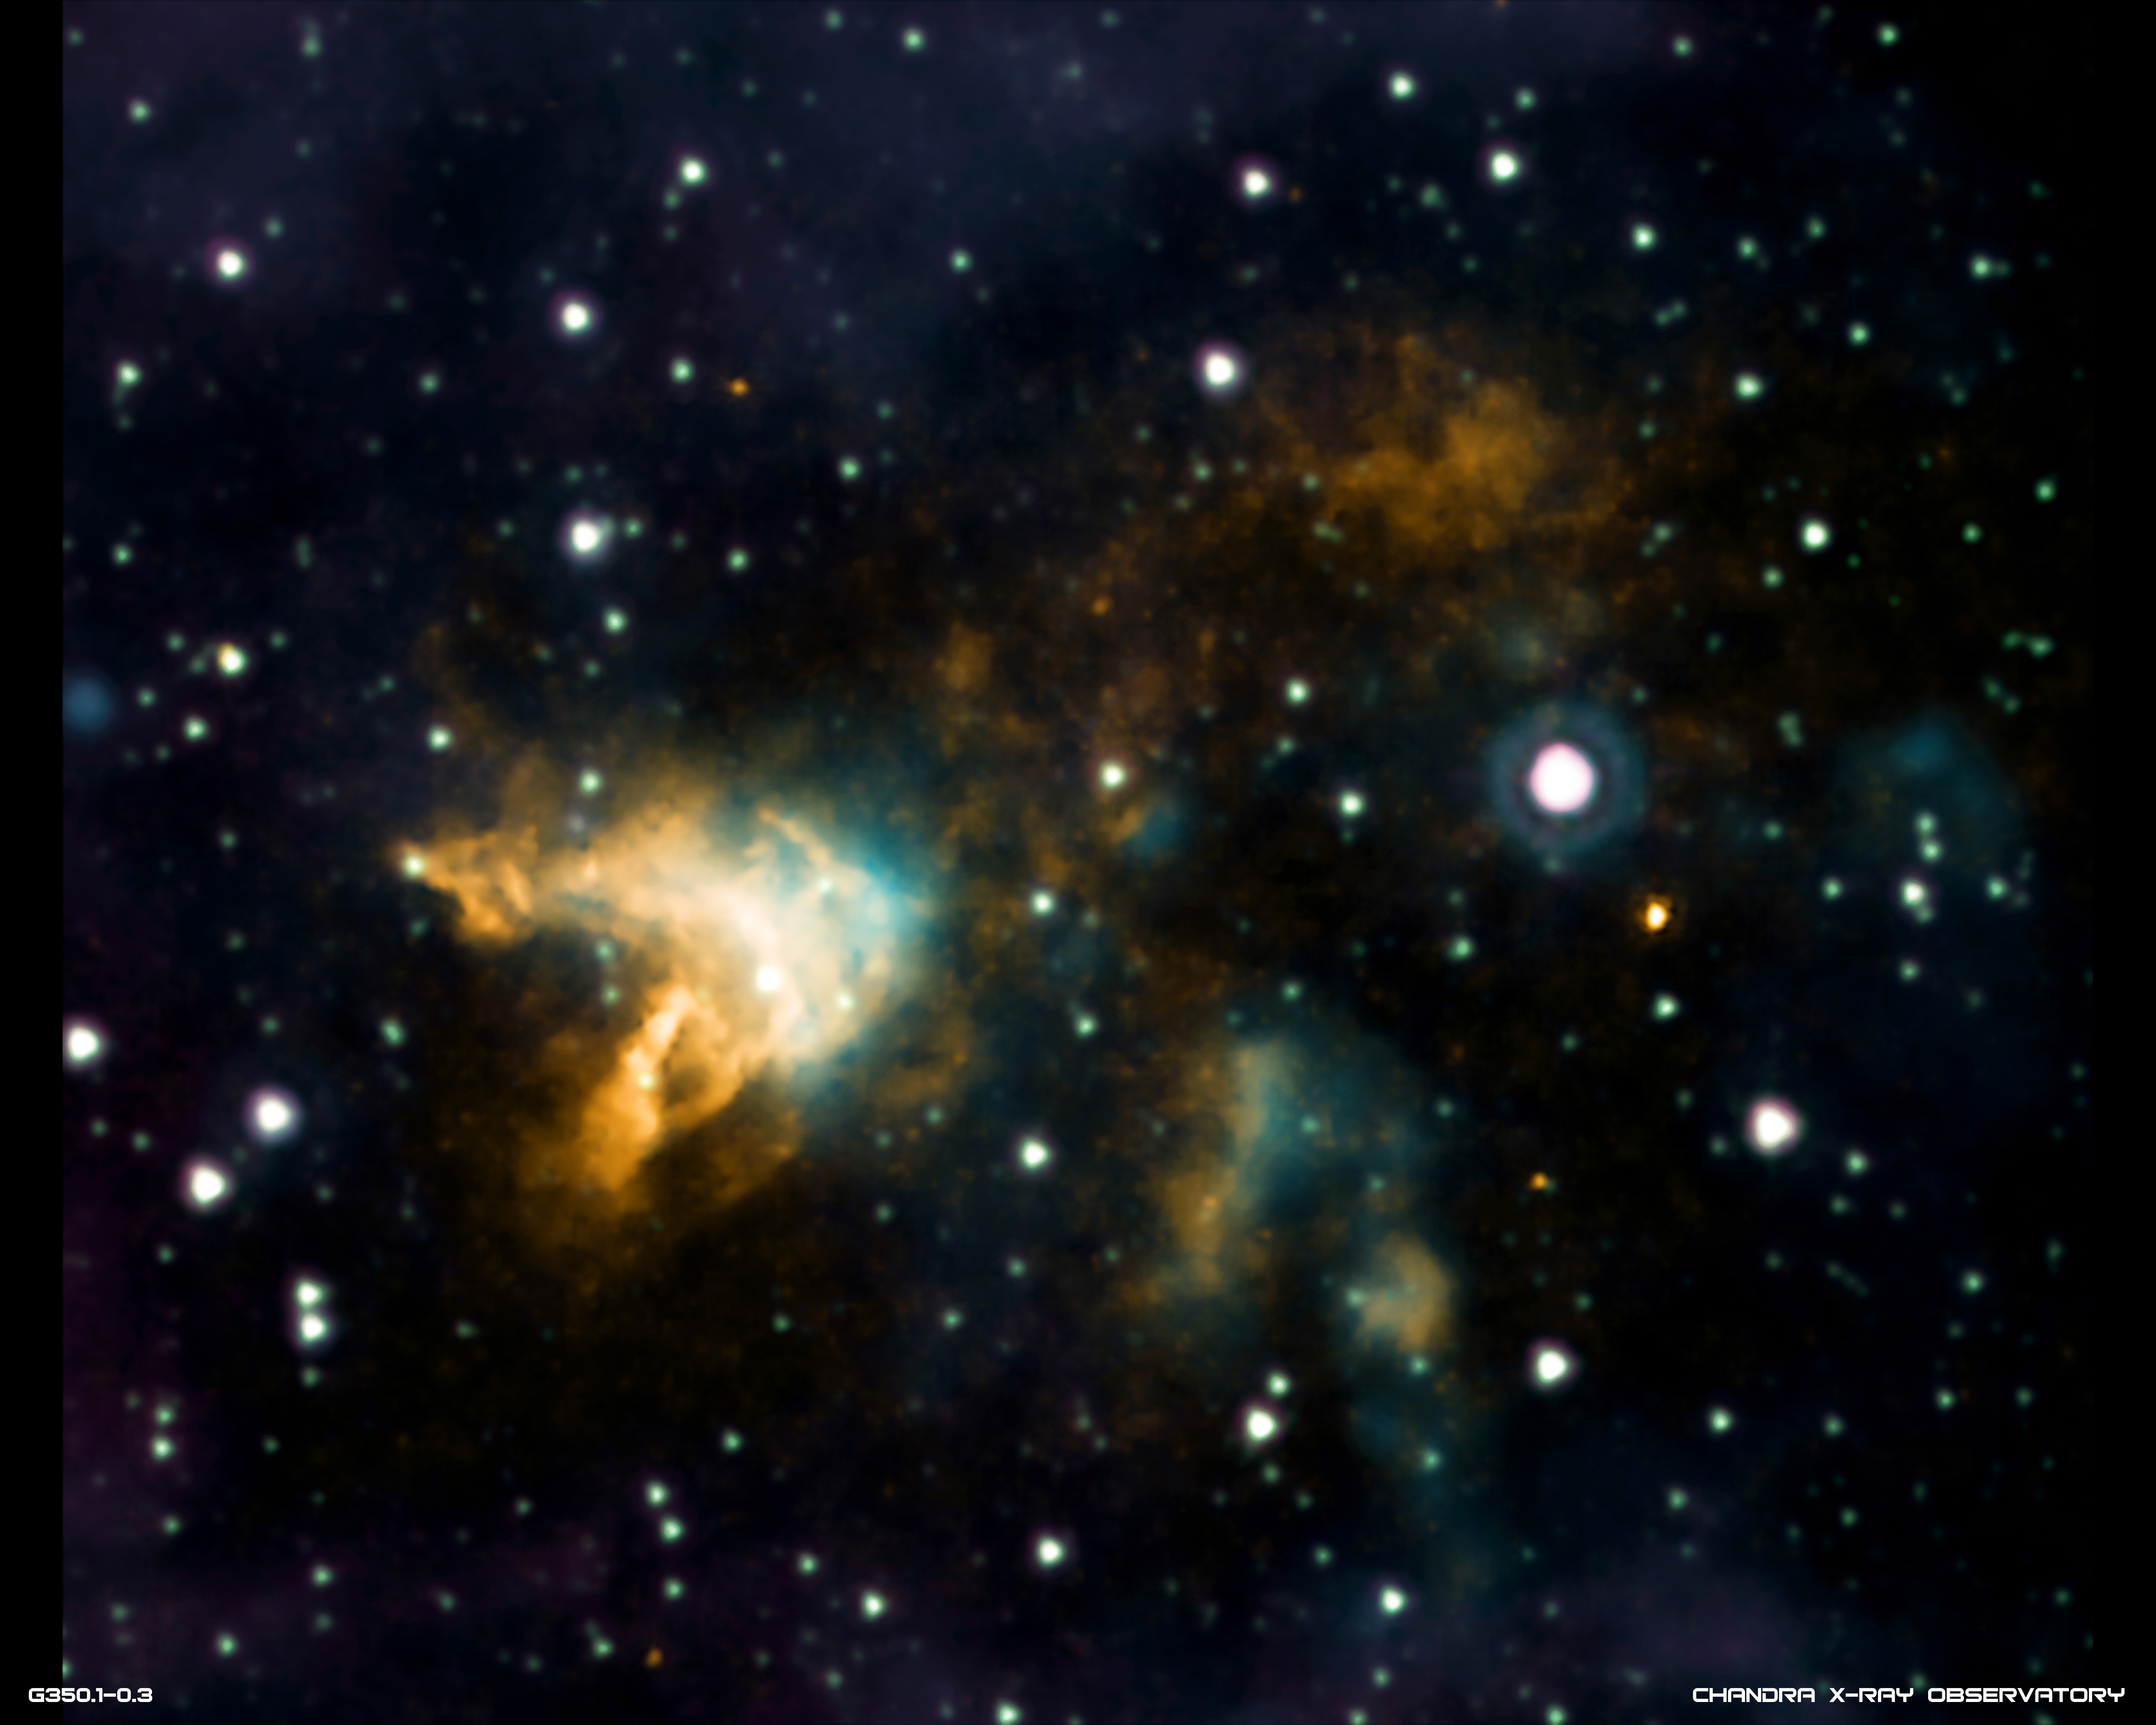 3e47eb7be Bright orange and white cloudlike bursts of material against deep space  with stars in background